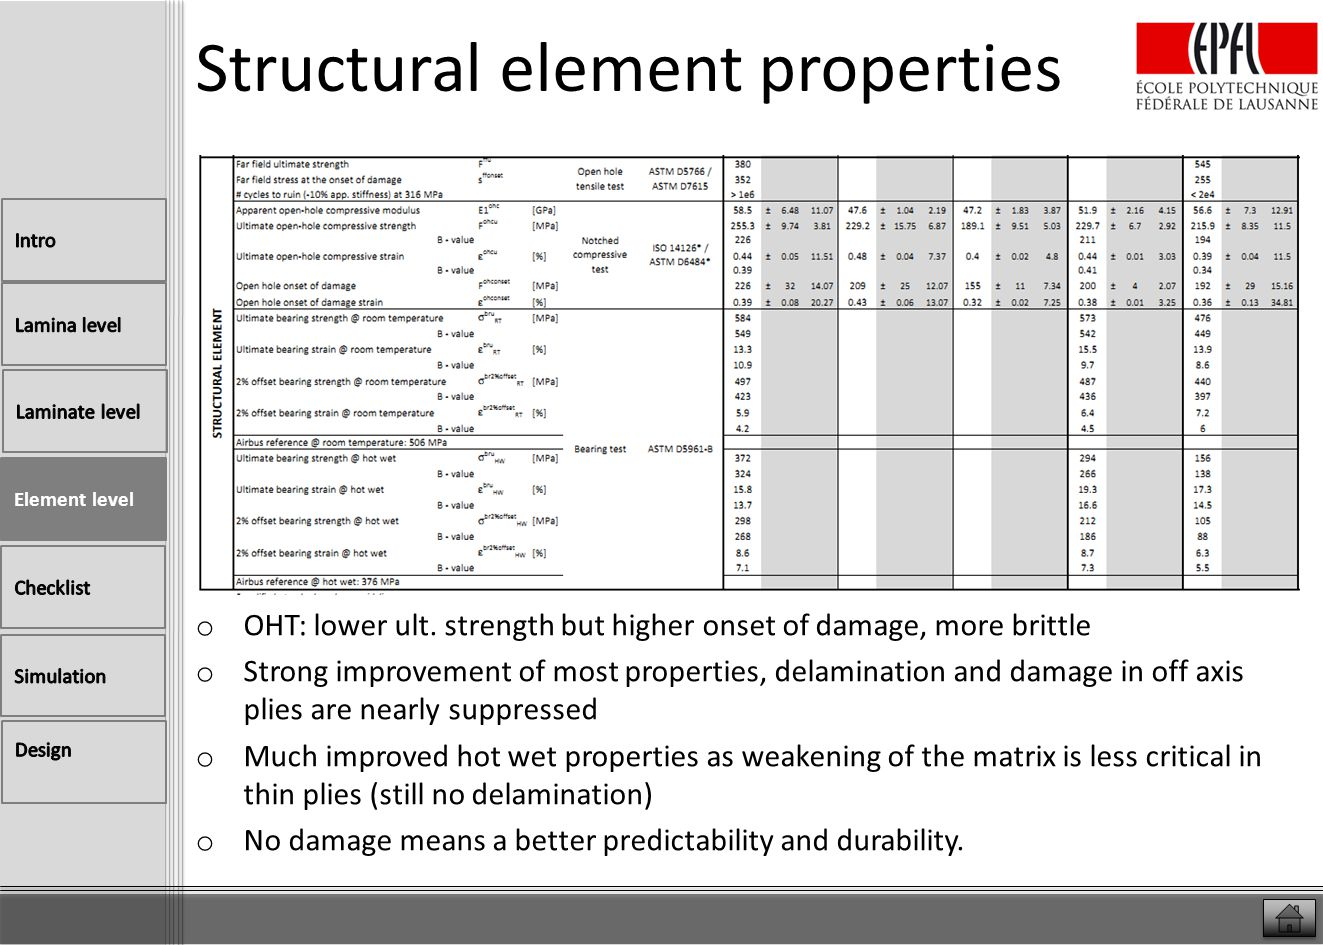 Structural element properties o OHT: lower ult. strength but higher onset of damage, more brittle o Strong improvement of most properties, delaminatio